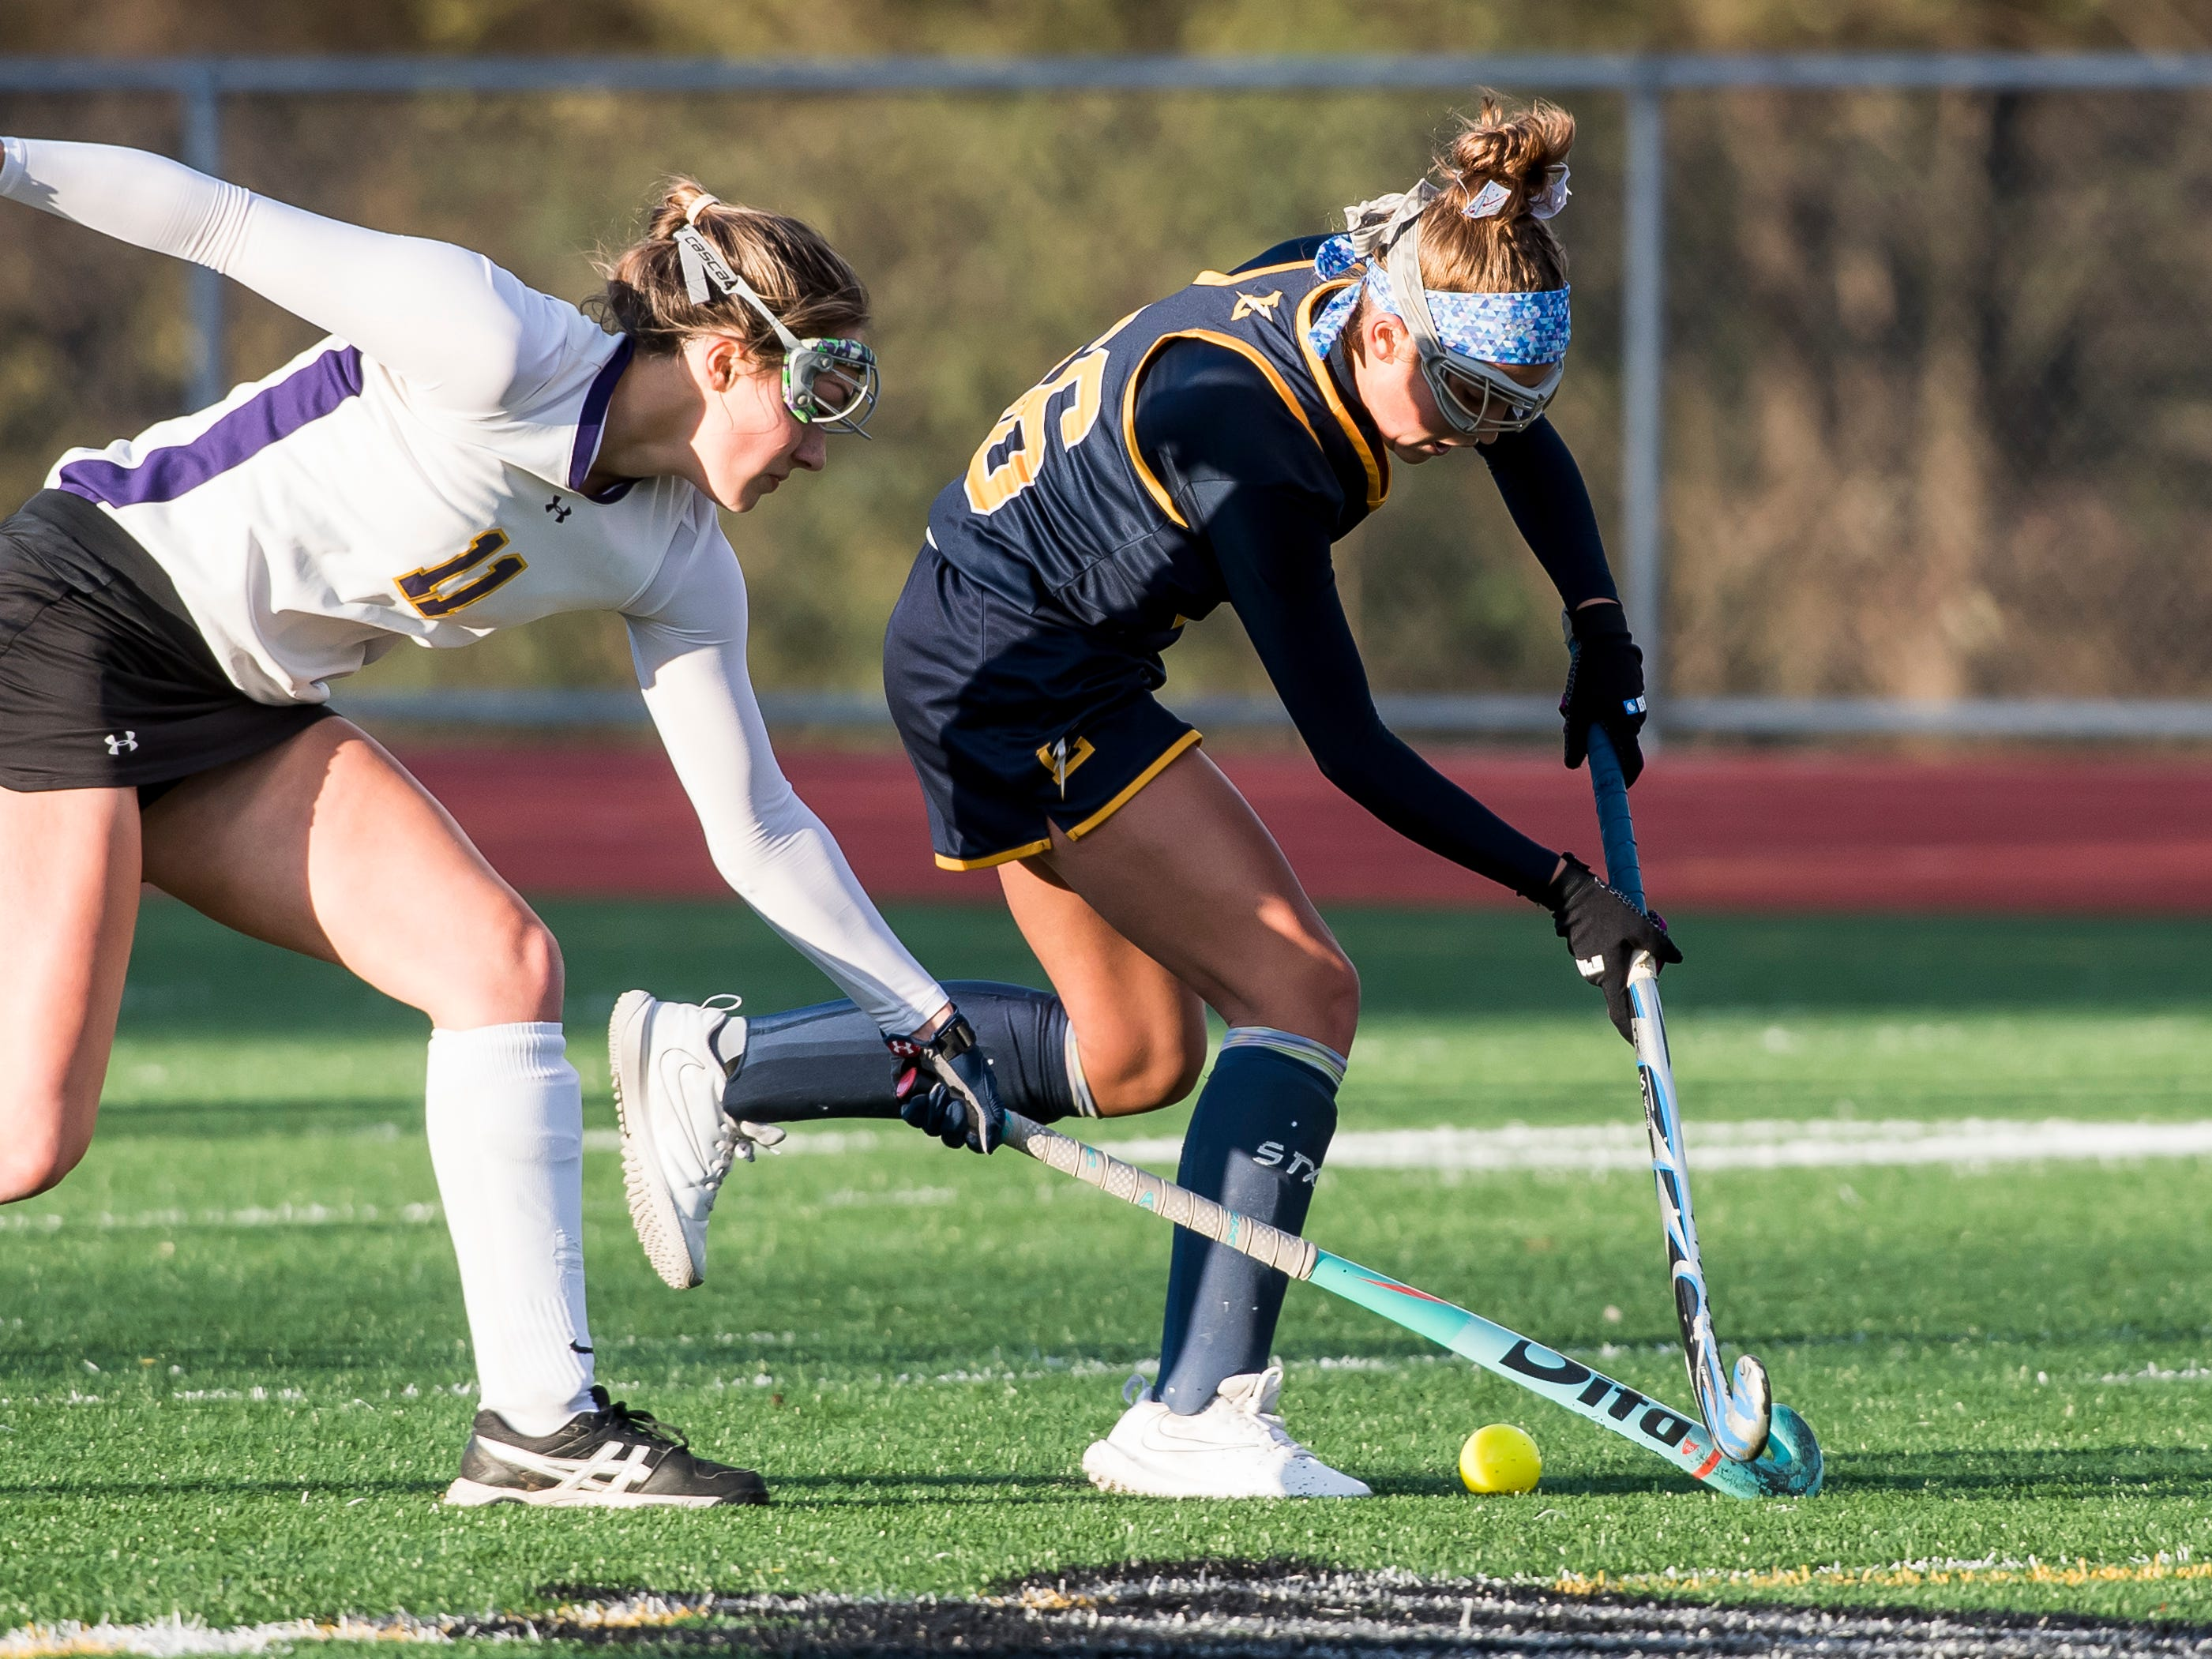 Littlestown's Carter Clabaugh and Boiling Springs' Allie Ball battle for the ball during a PIAA District III first round game at Bermudian Springs High School on Wednesday, October 24, 2018. The Bolts fell 2-0.